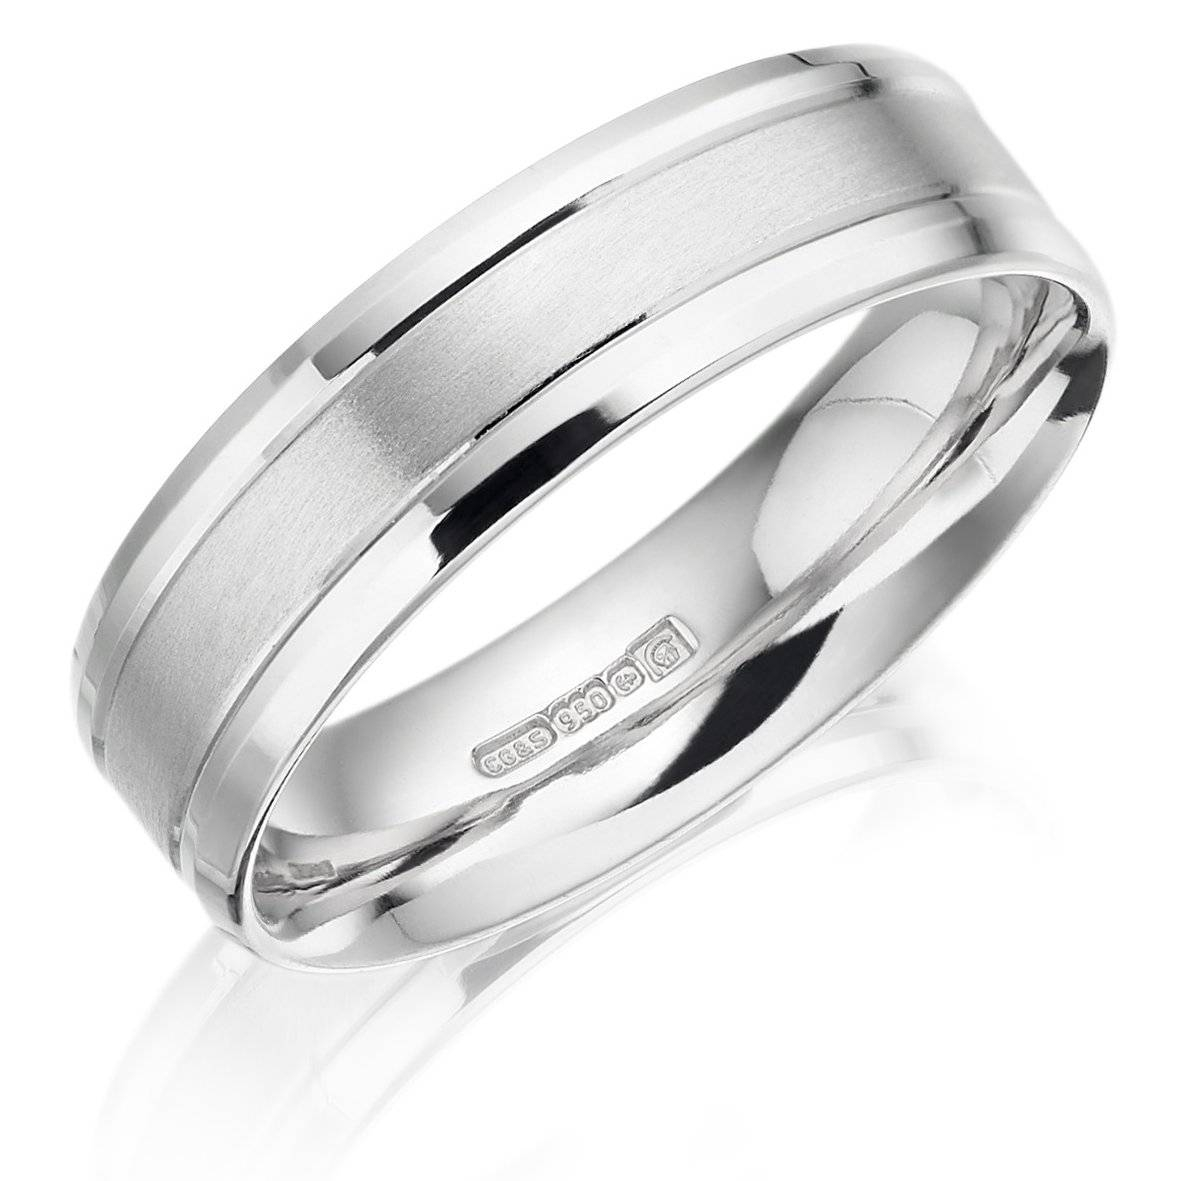 Gents Palladium Patterned 6Mm Wedding Ring – Winsor Bishop Jewellers Regarding Palladium Wedding Rings (View 3 of 15)